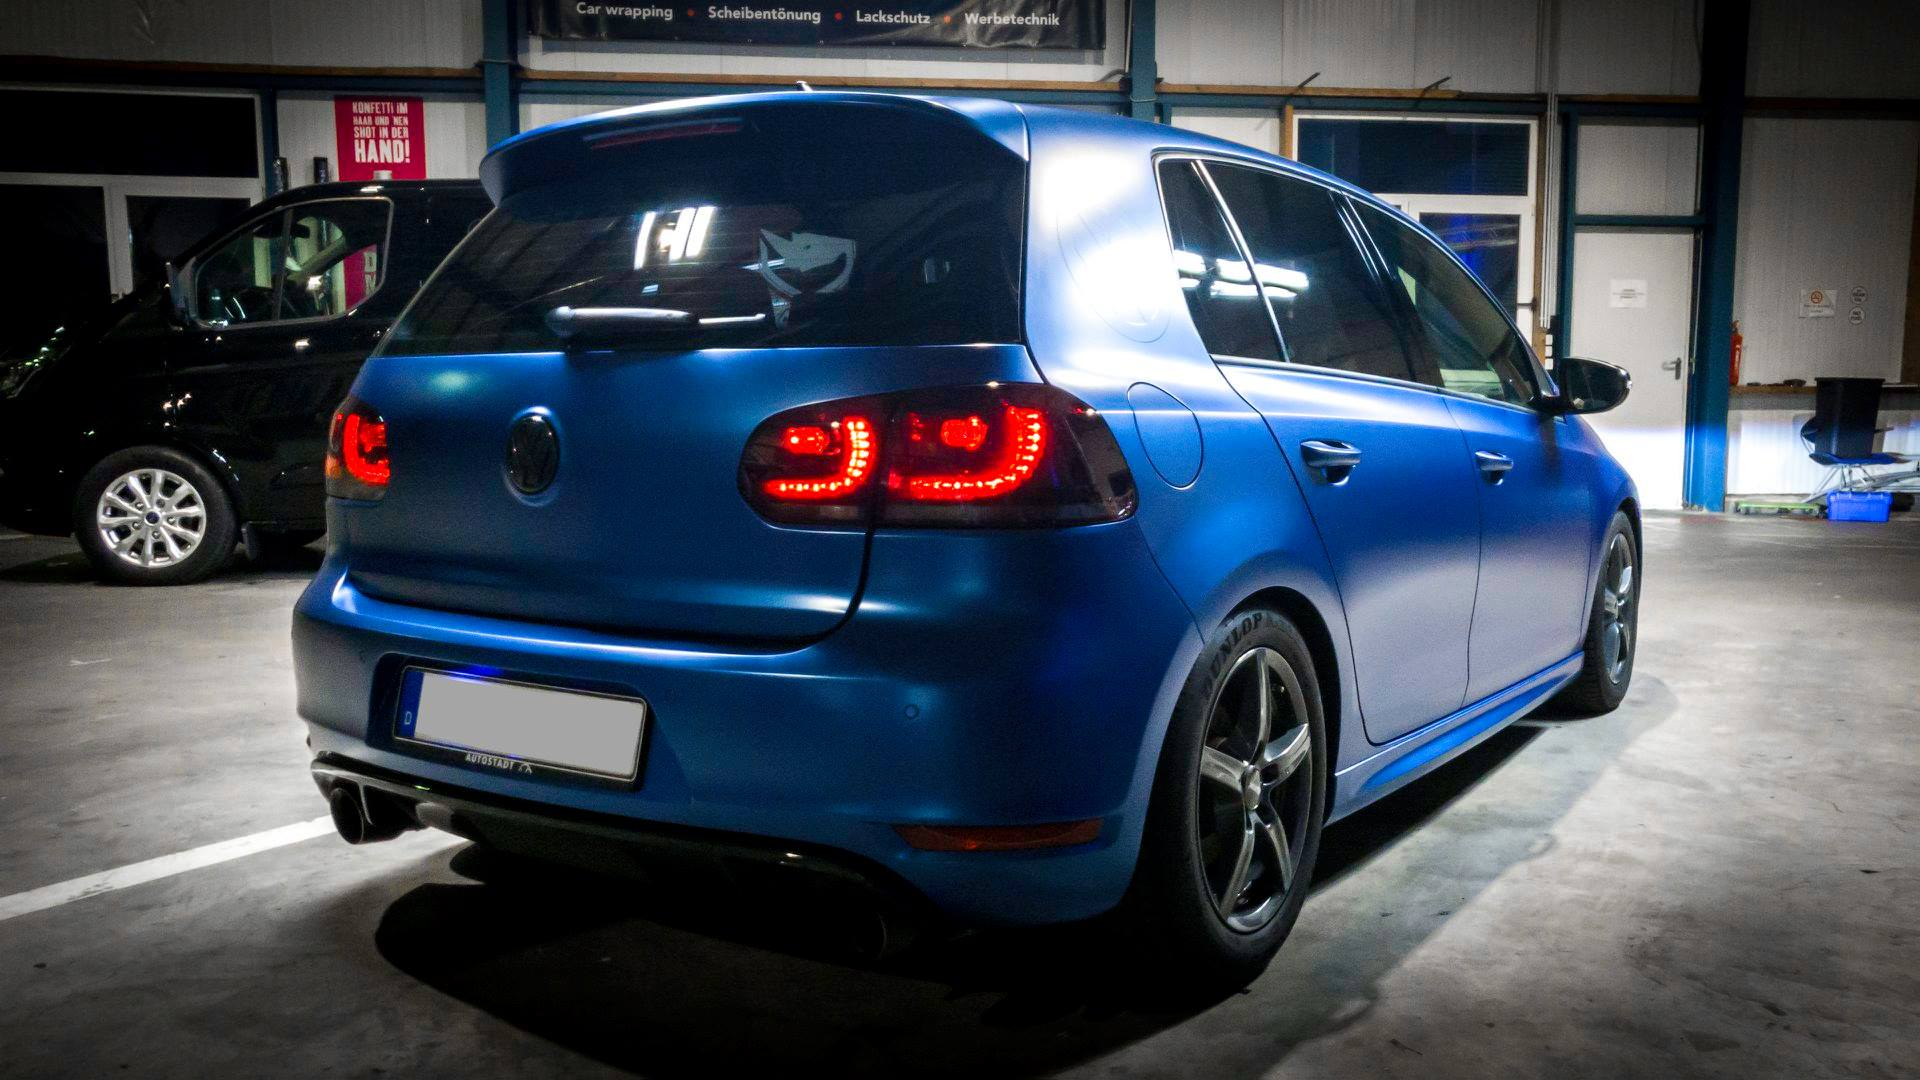 Golf 7 Volkswagen VW Avery Blue Matte